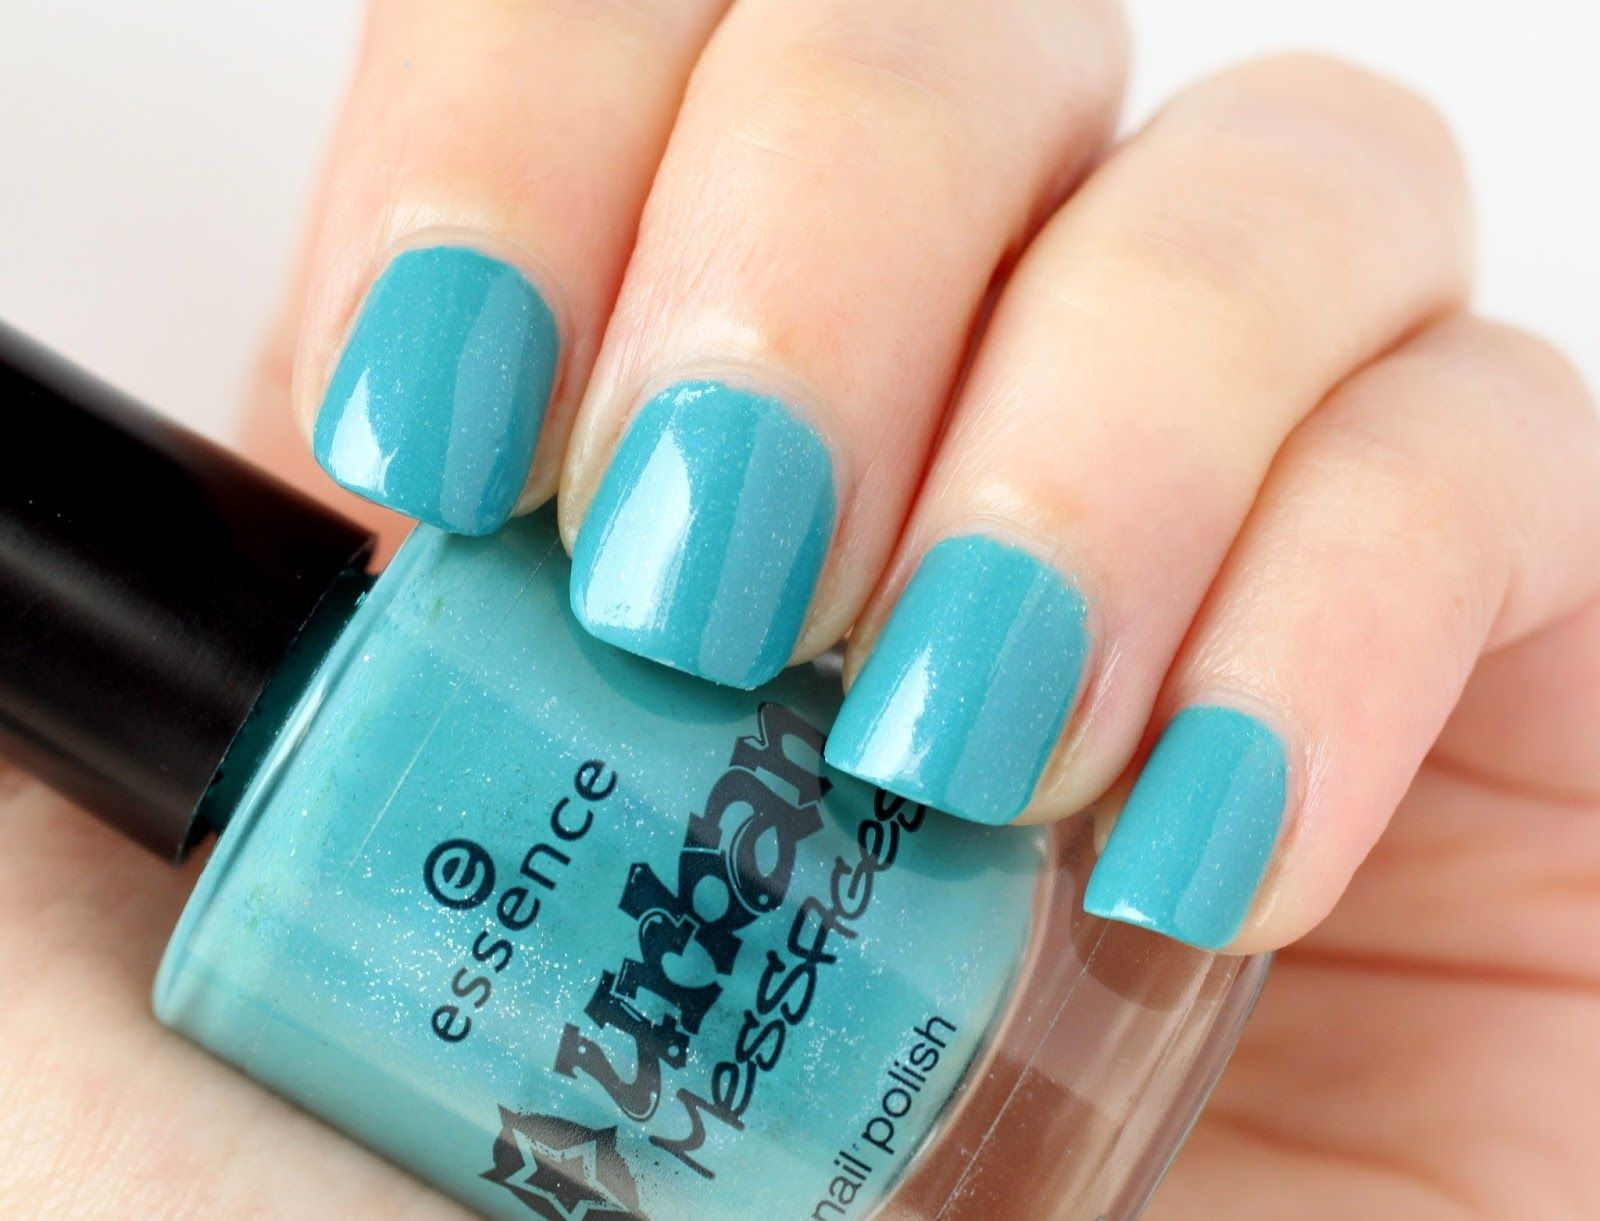 Blue Turquoise Nails (Street Styler, Essence) by DoBeauting!